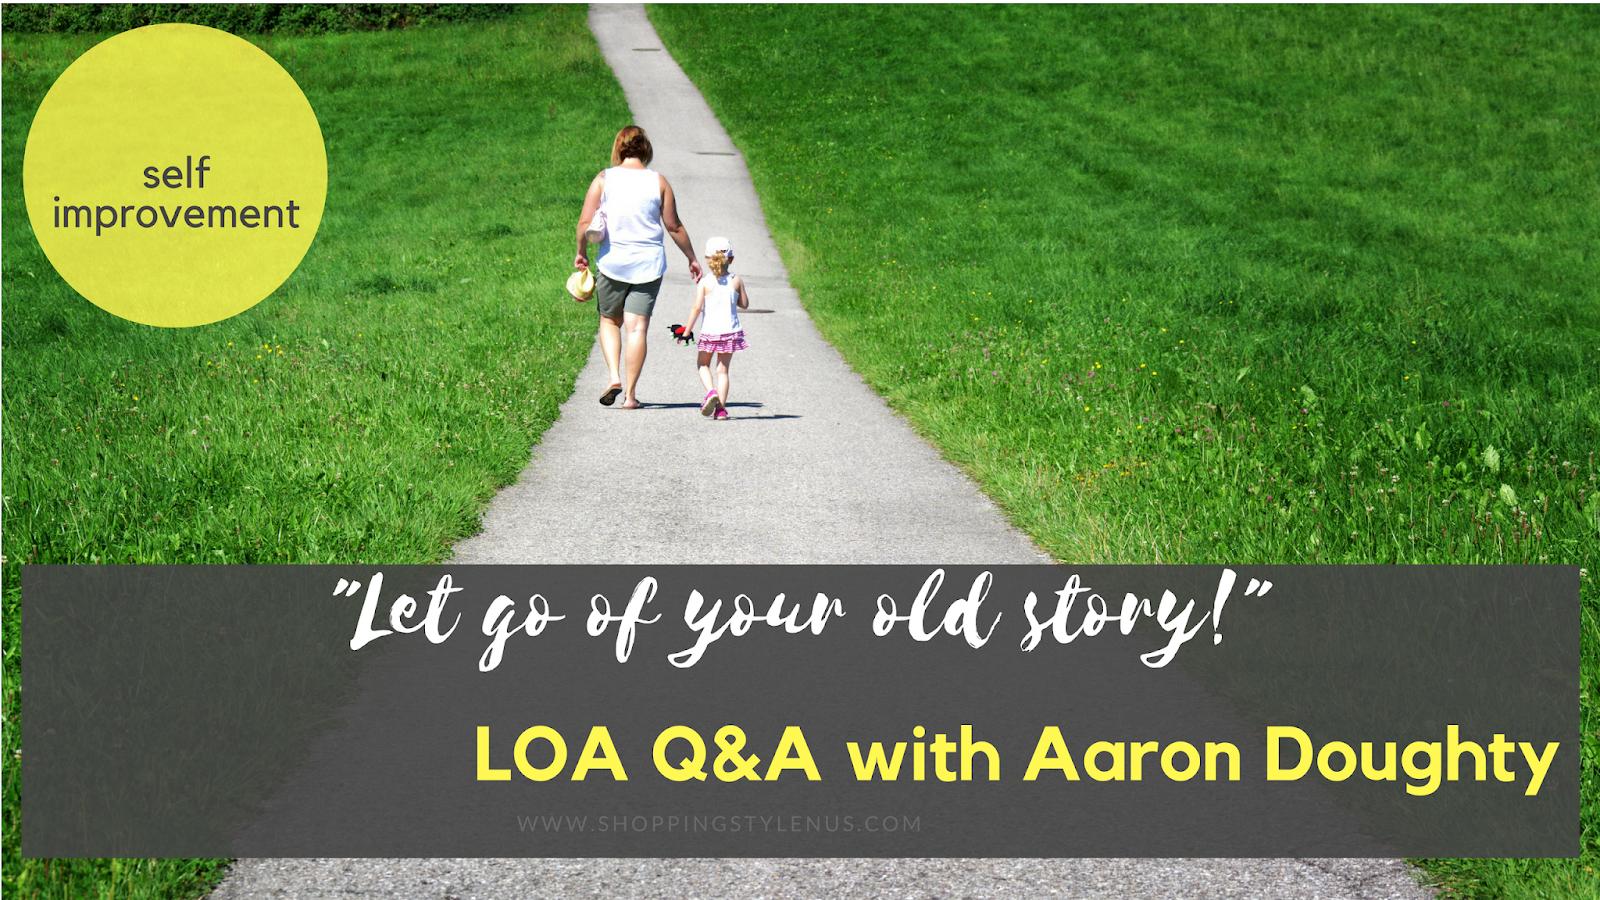 b8cd44fcf923 Law of Attraction Q&A With Aaron Doughty | Let Go of Your Old Story ...